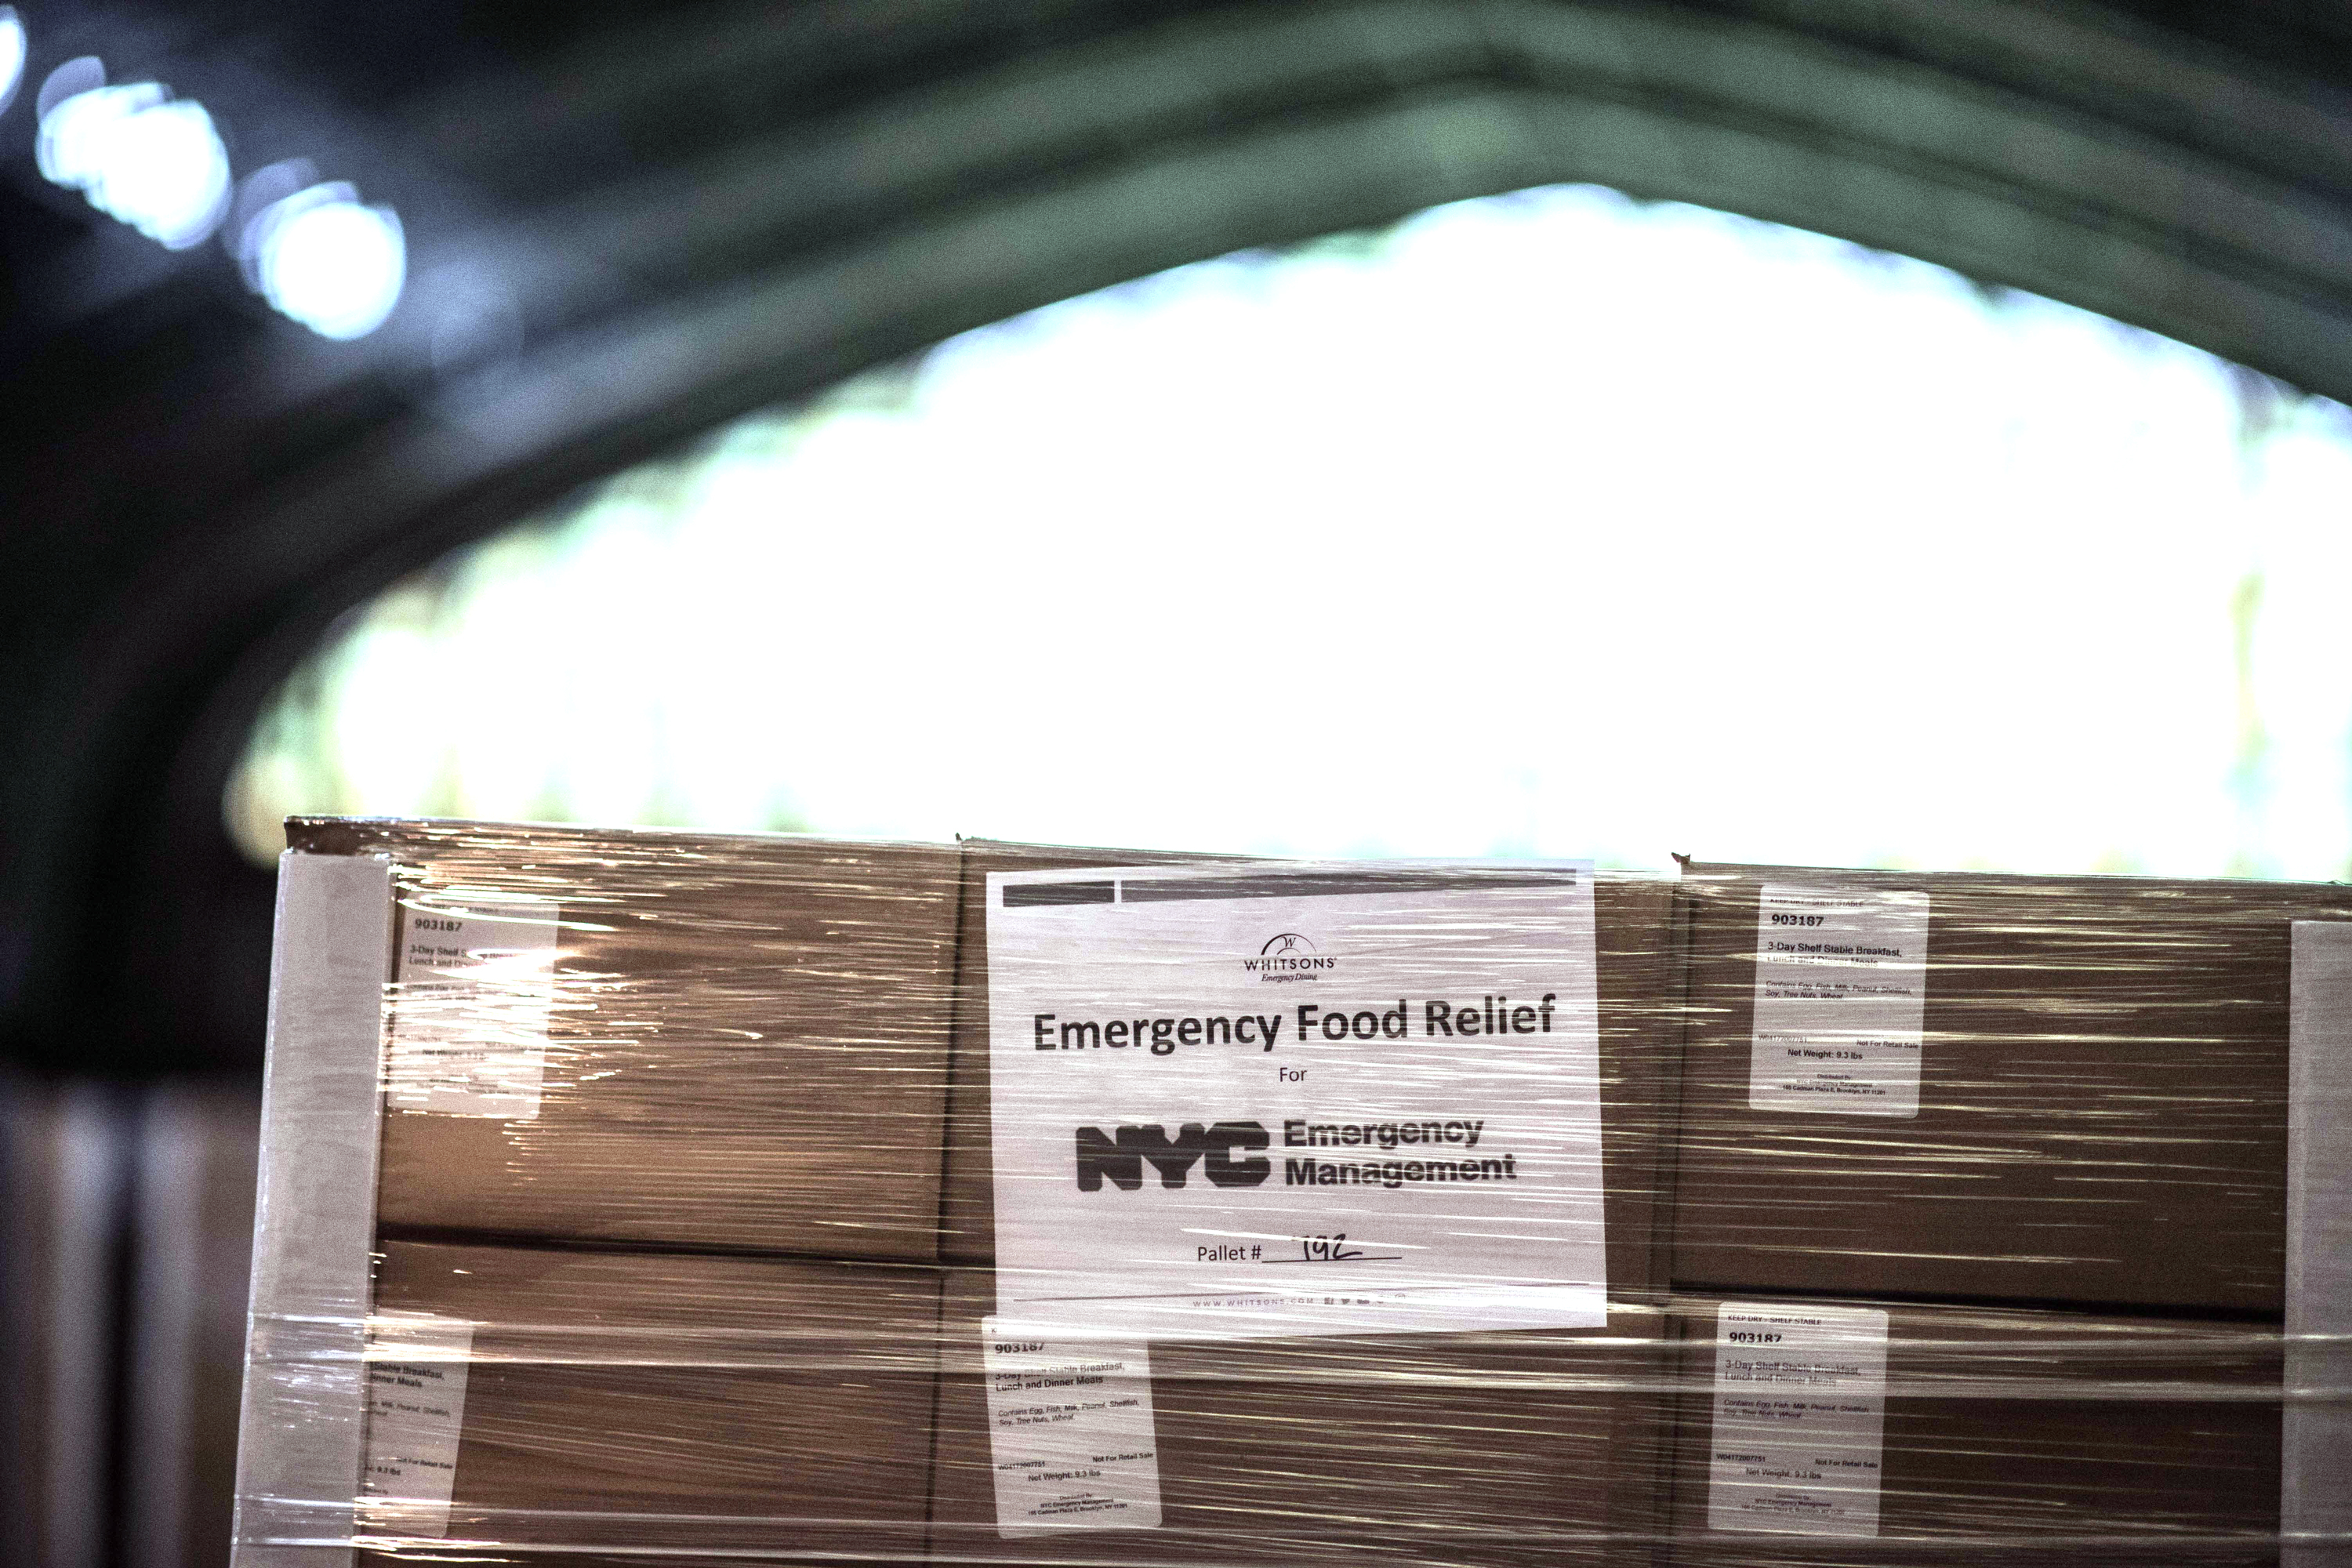 Boxes of food at the Kingsbridge Armory, April 18, 2020.